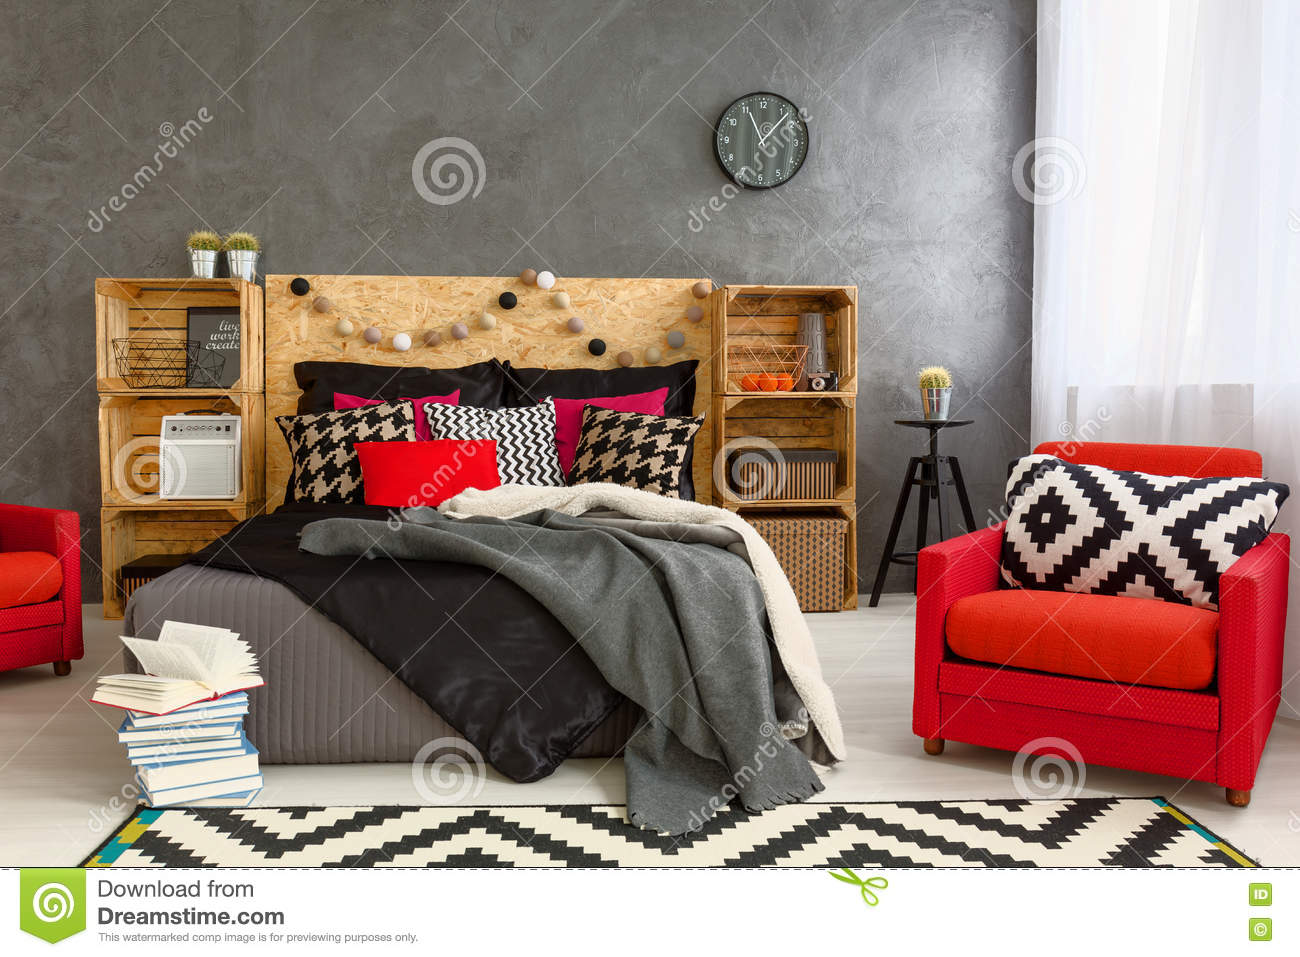 Cozy Bedroom In Grey With Beautiful Home Decorations Stock Photo - Image: 70467938